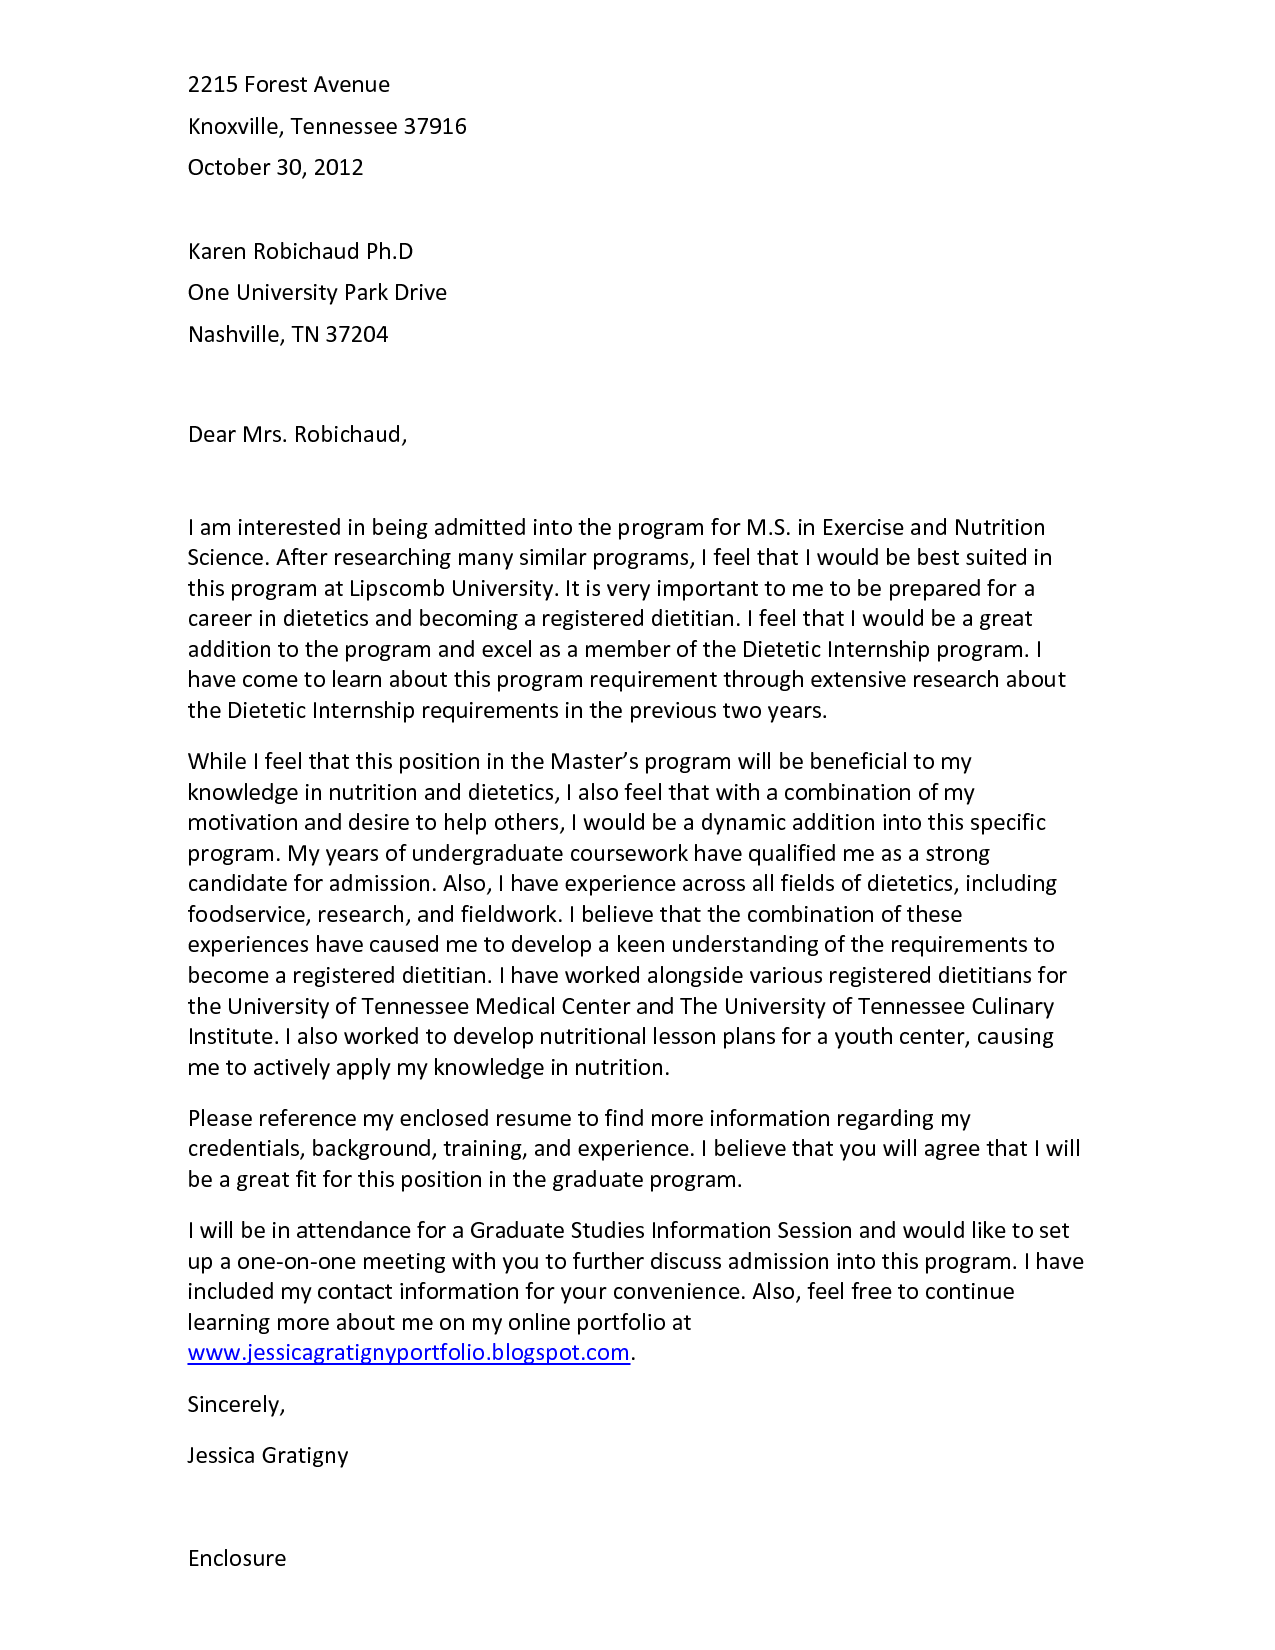 motivation letter example for university